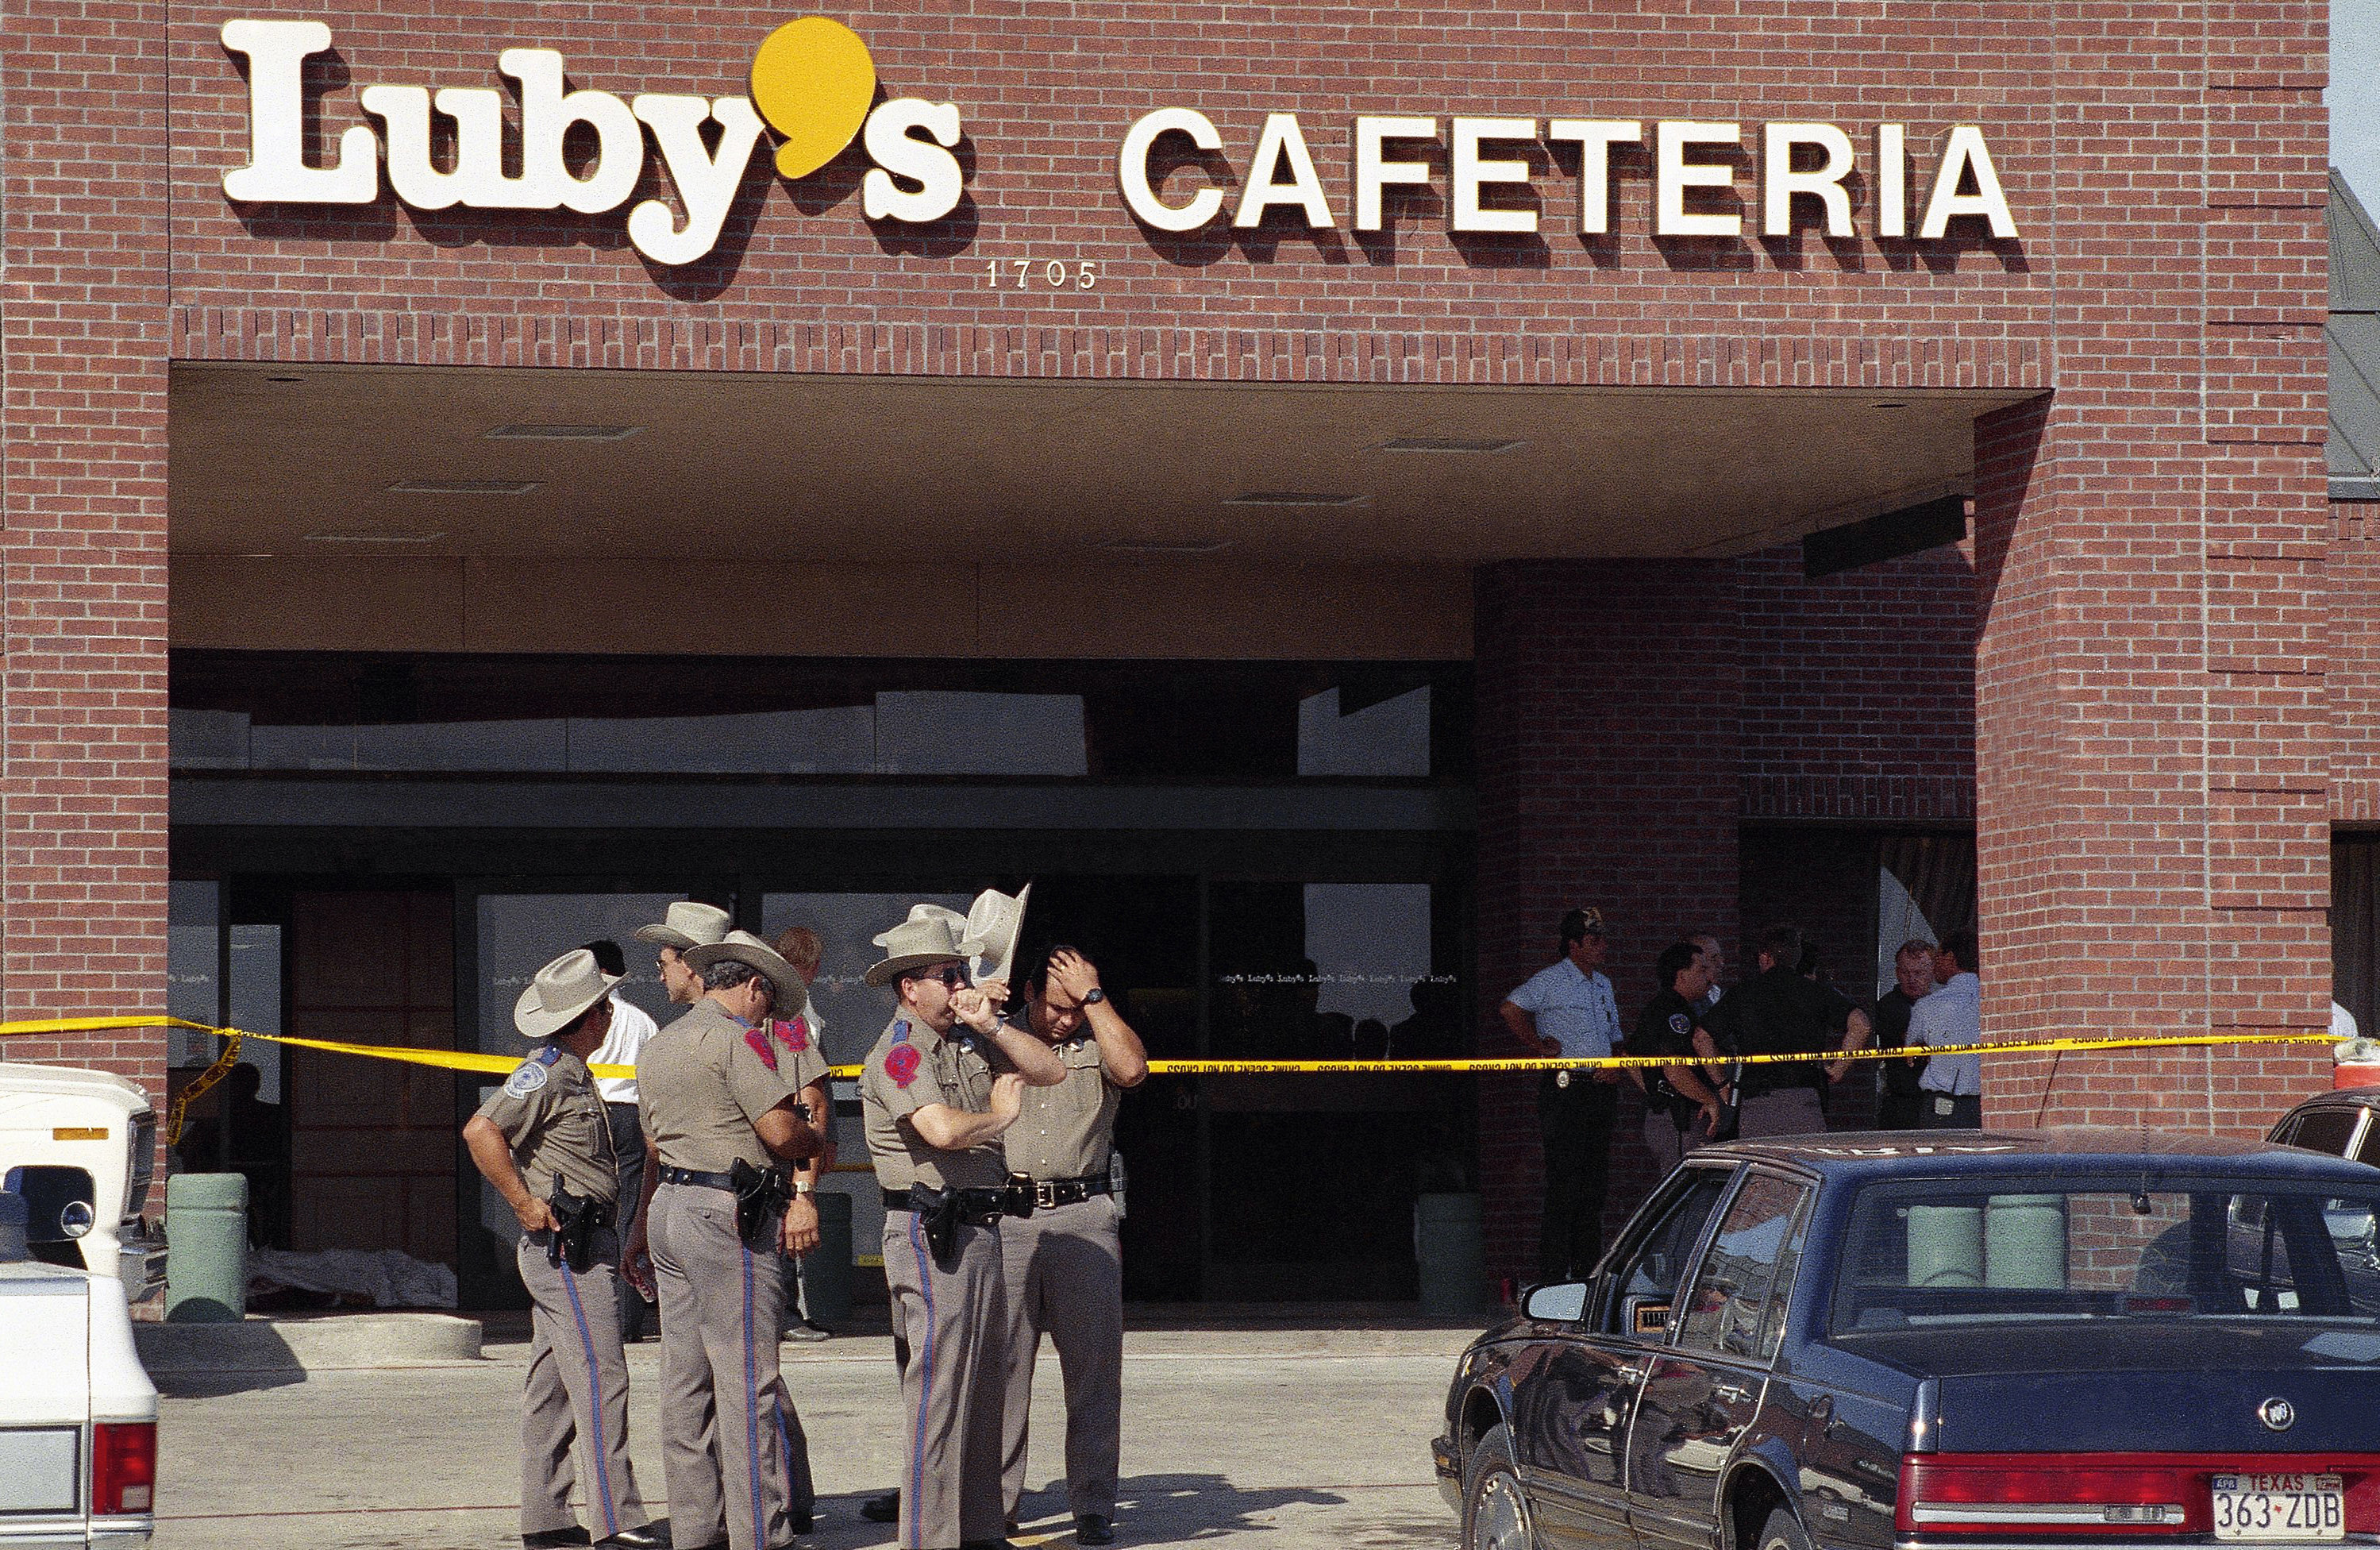 Police officers gather outside Luby's Cafeteria in Killeen, Texas, at the scene where a gunman killed 23 people including himself, with semi-automatic gunfire during lunchtime on Wednesday, Oct. 16, 1991